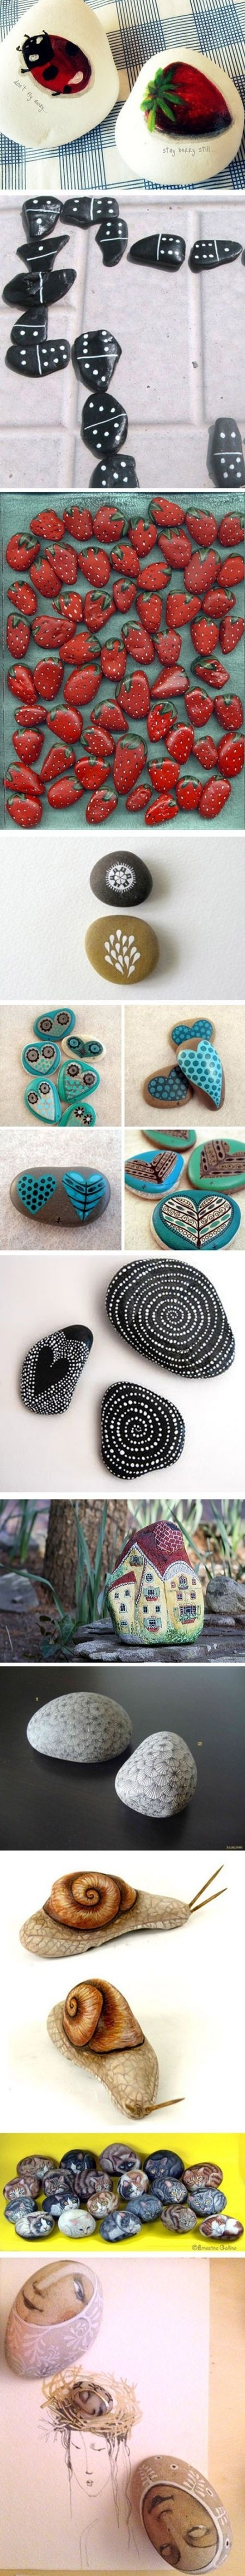 Tons of Great Rock Painting Ideas